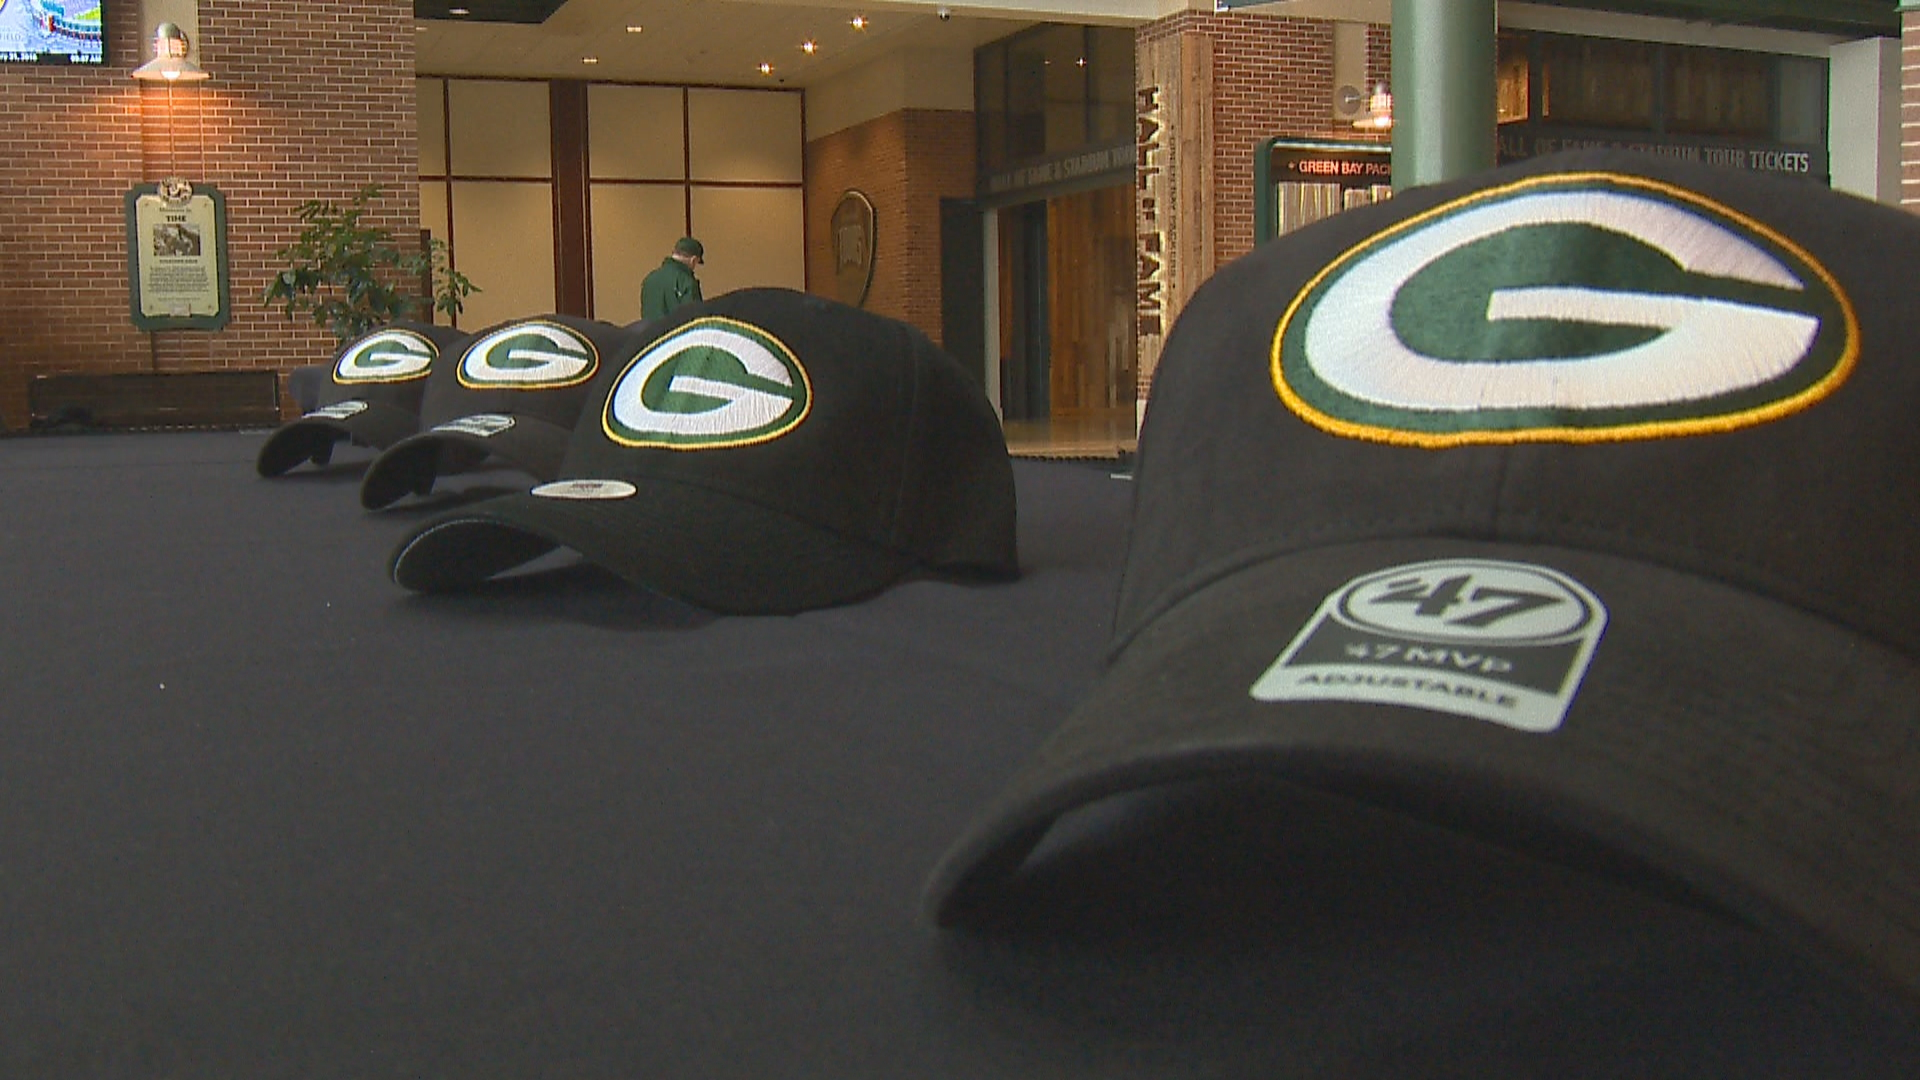 Green Bay public schools are teaming up with the Green Bay Packers and Bellin Health to sell baseball caps featuring the Packers, Bellin Health and the school's logo. The money raised will help support each school's athletic programs, January 31, 2018. (WLUK)